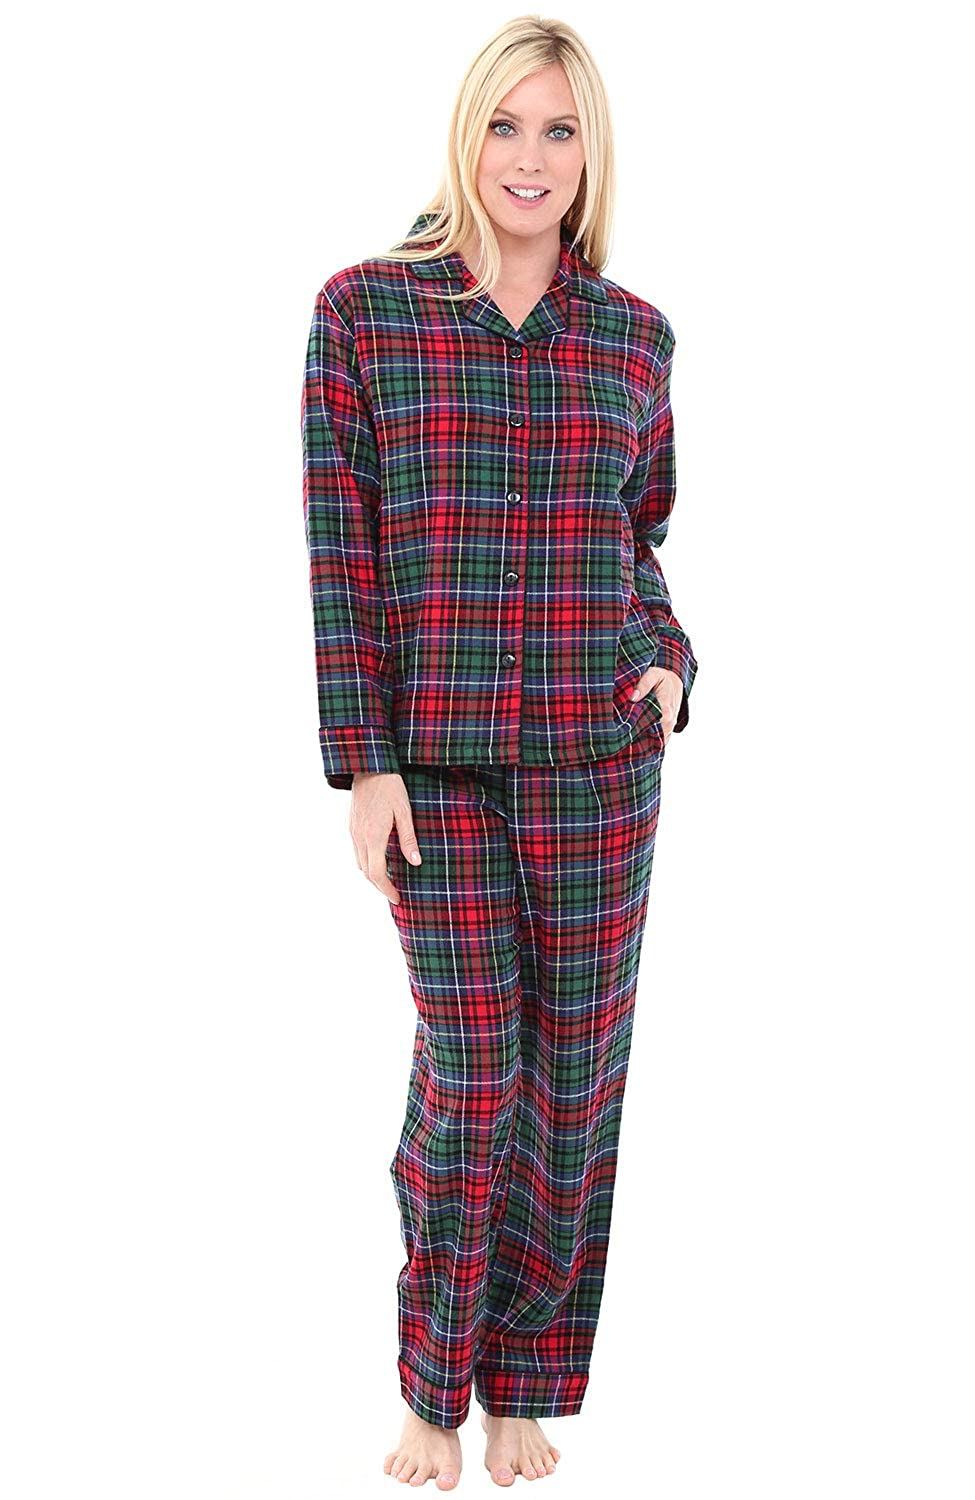 6197b9be3decc Alexander Del Rossa Women's Warm Flannel Pajama Set, Long Plaid Button Down  Cotton Pjs at Amazon Women's Clothing store: